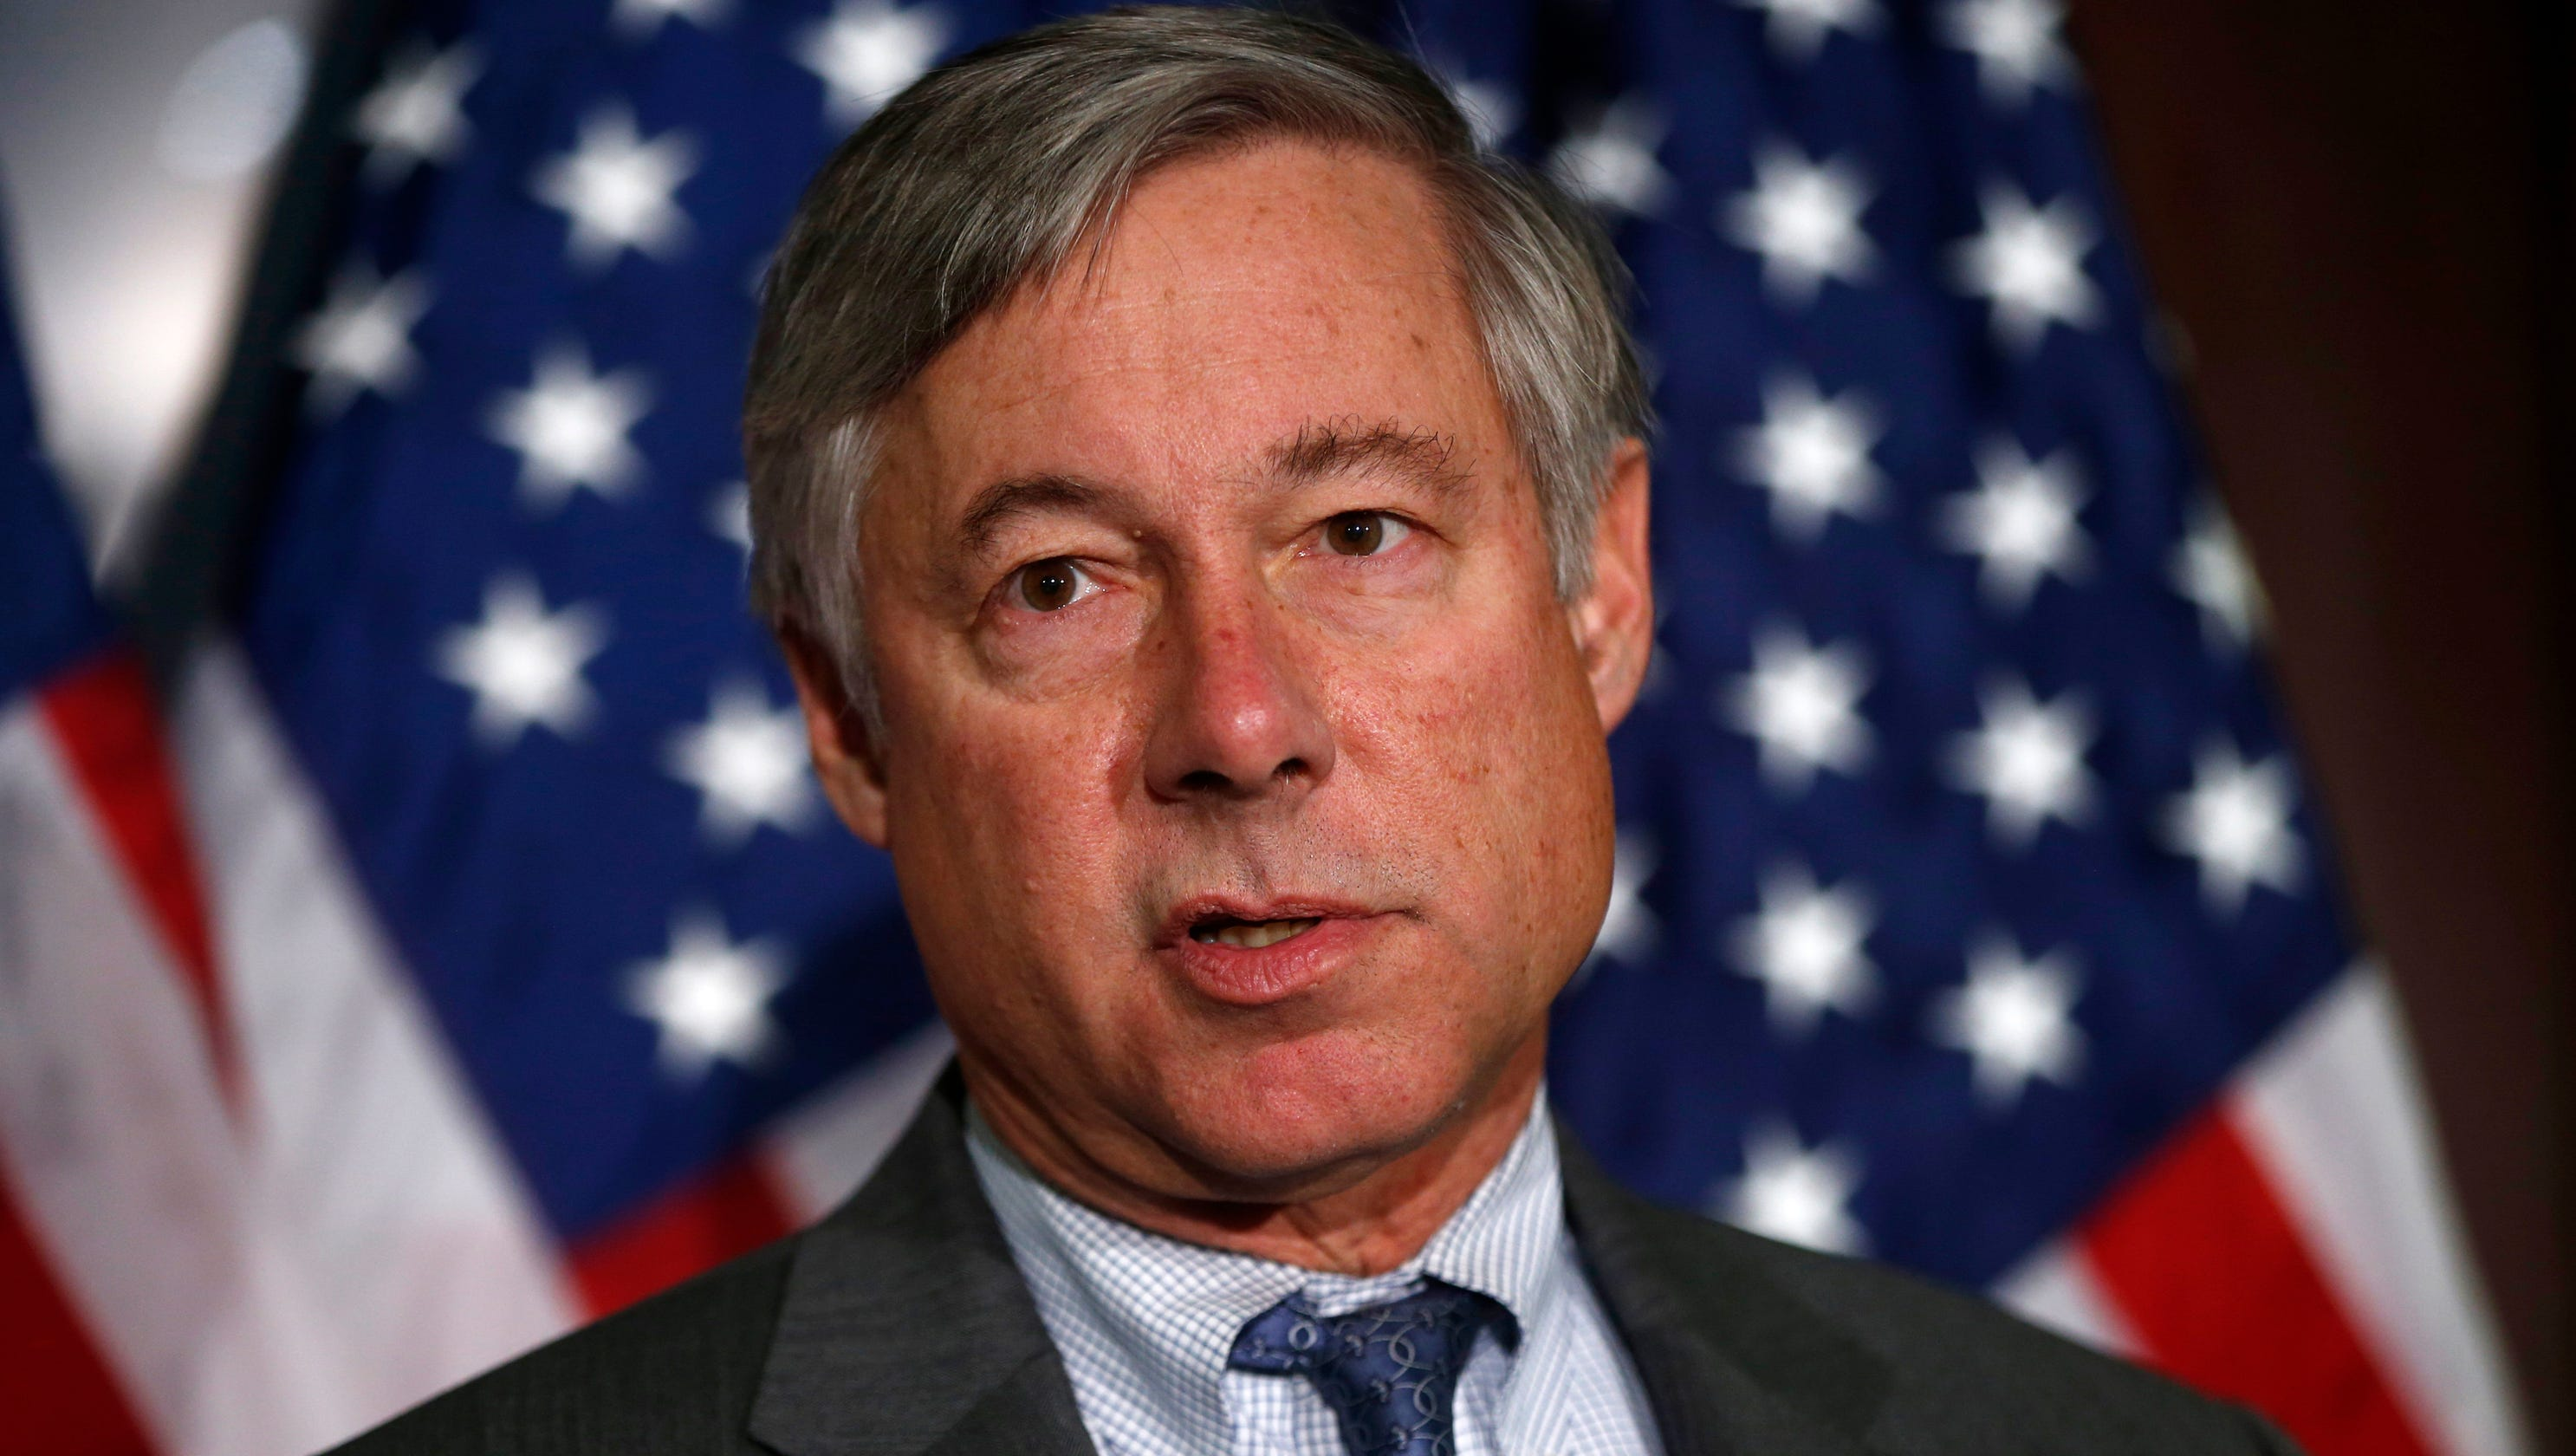 Michigan's Fred Upton will vote to impeach Trump, says 'enough is enough'